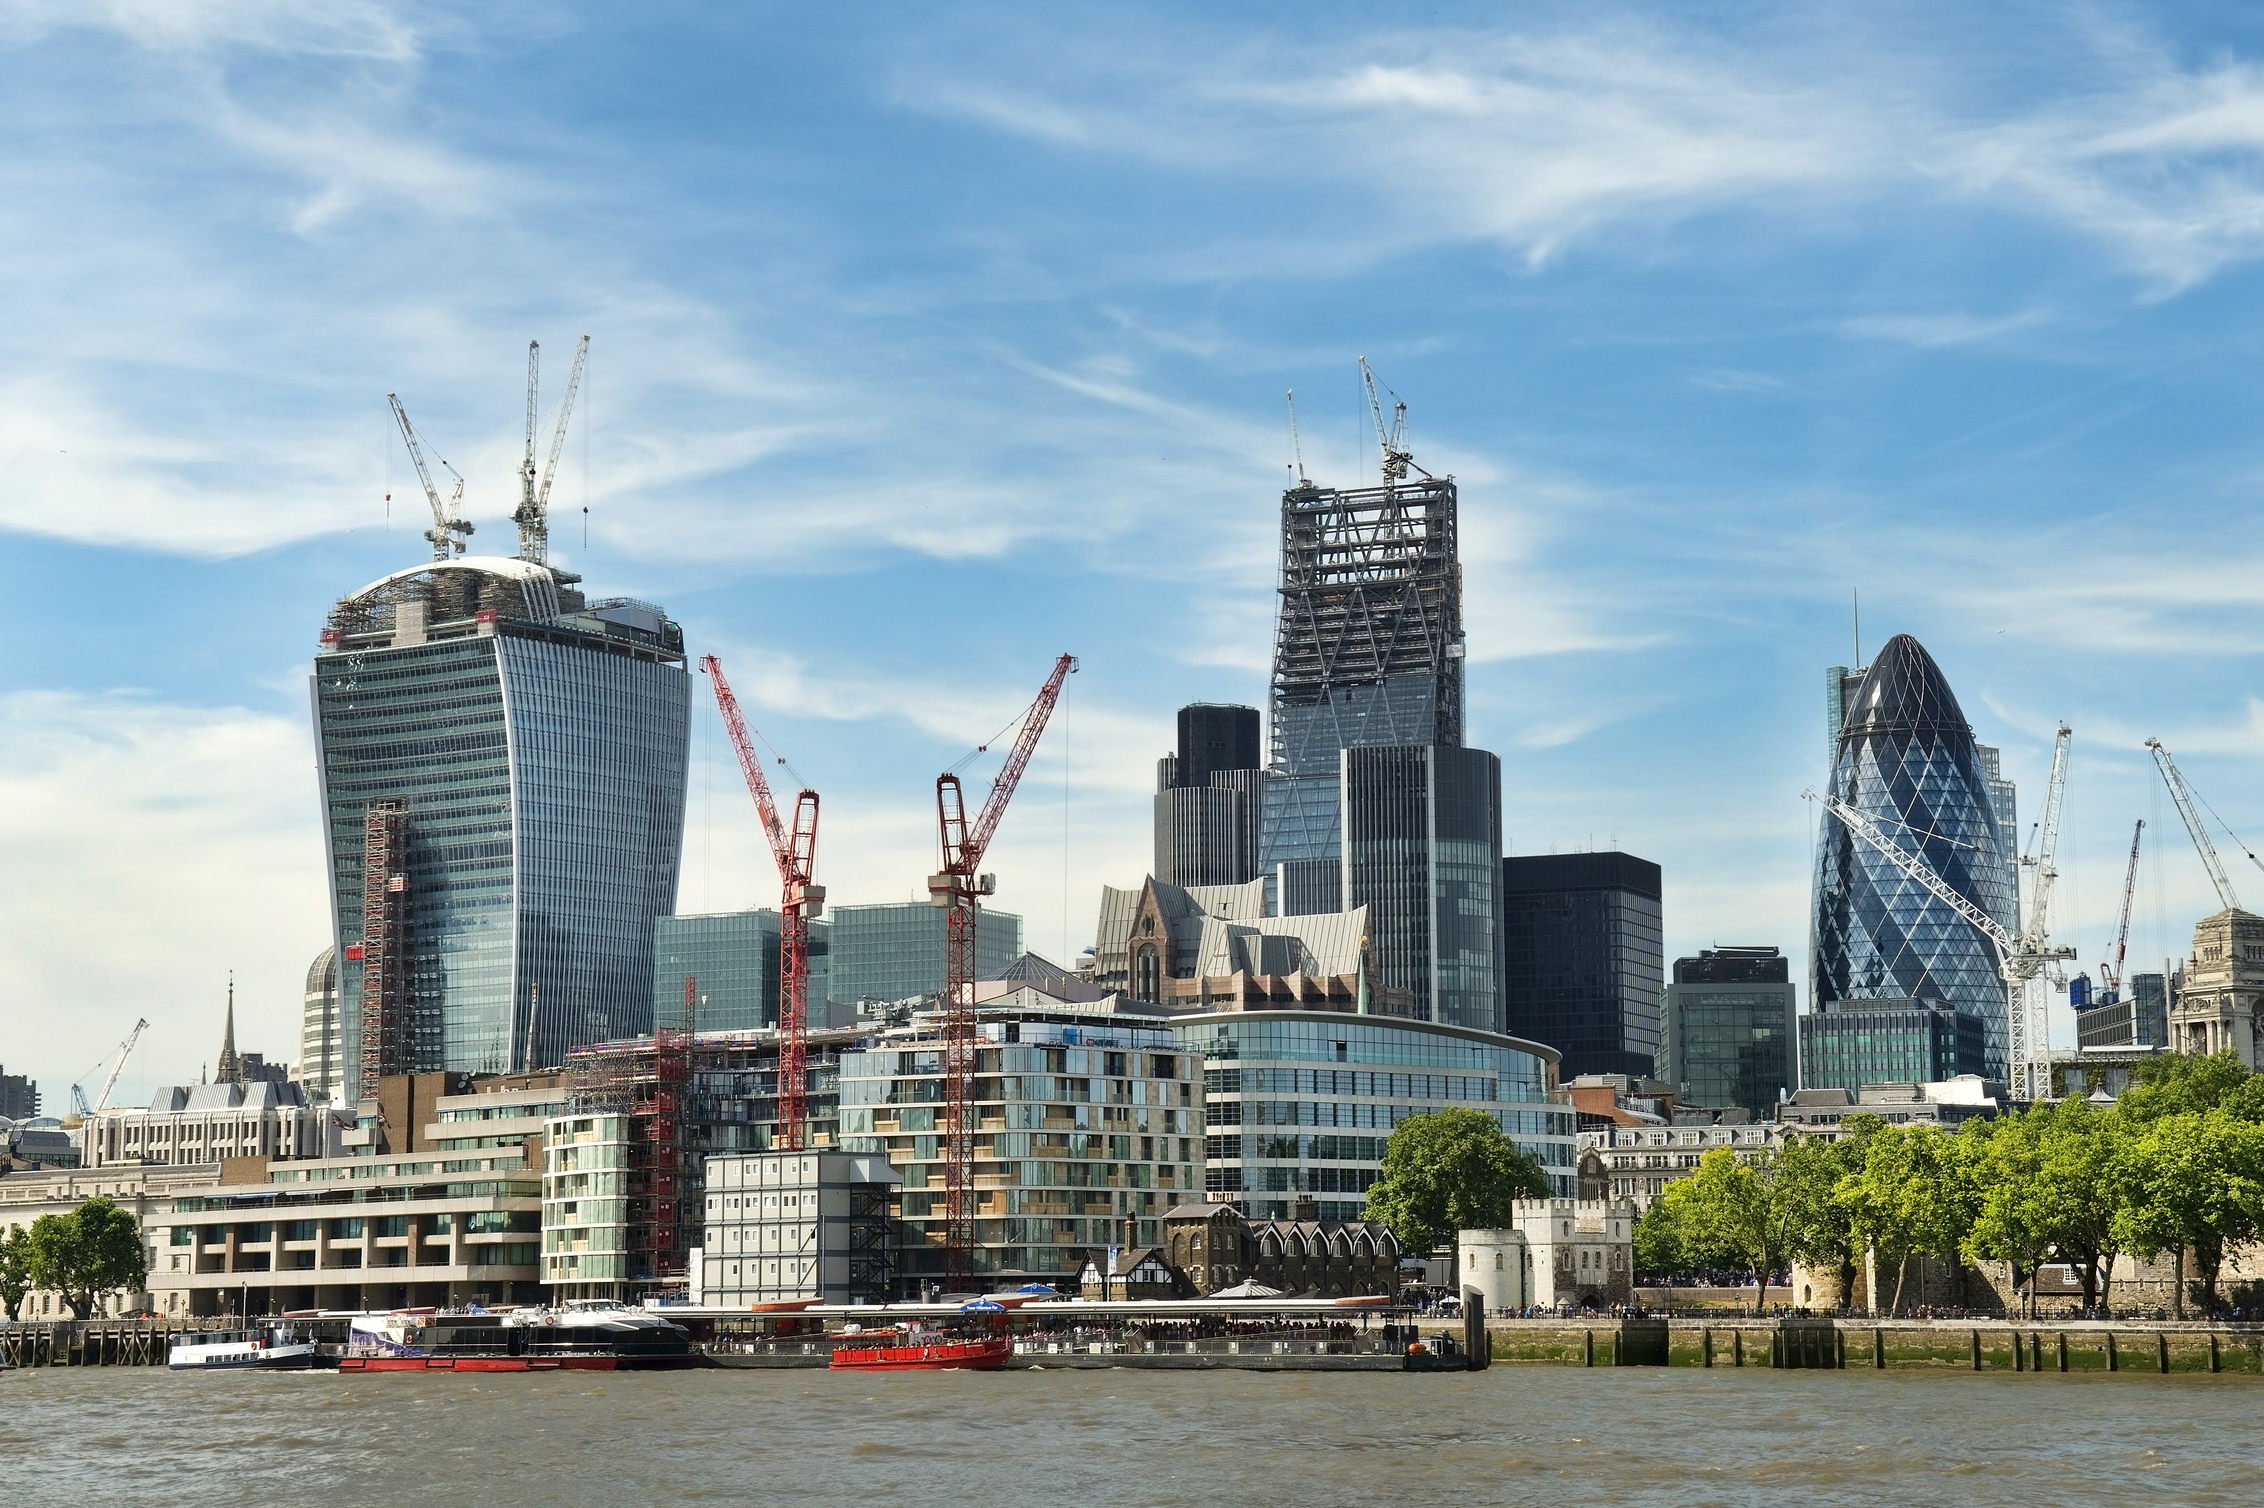 https://www.city.ac.uk/__data/assets/image/0003/505191/London-skyline-thumb.jpg